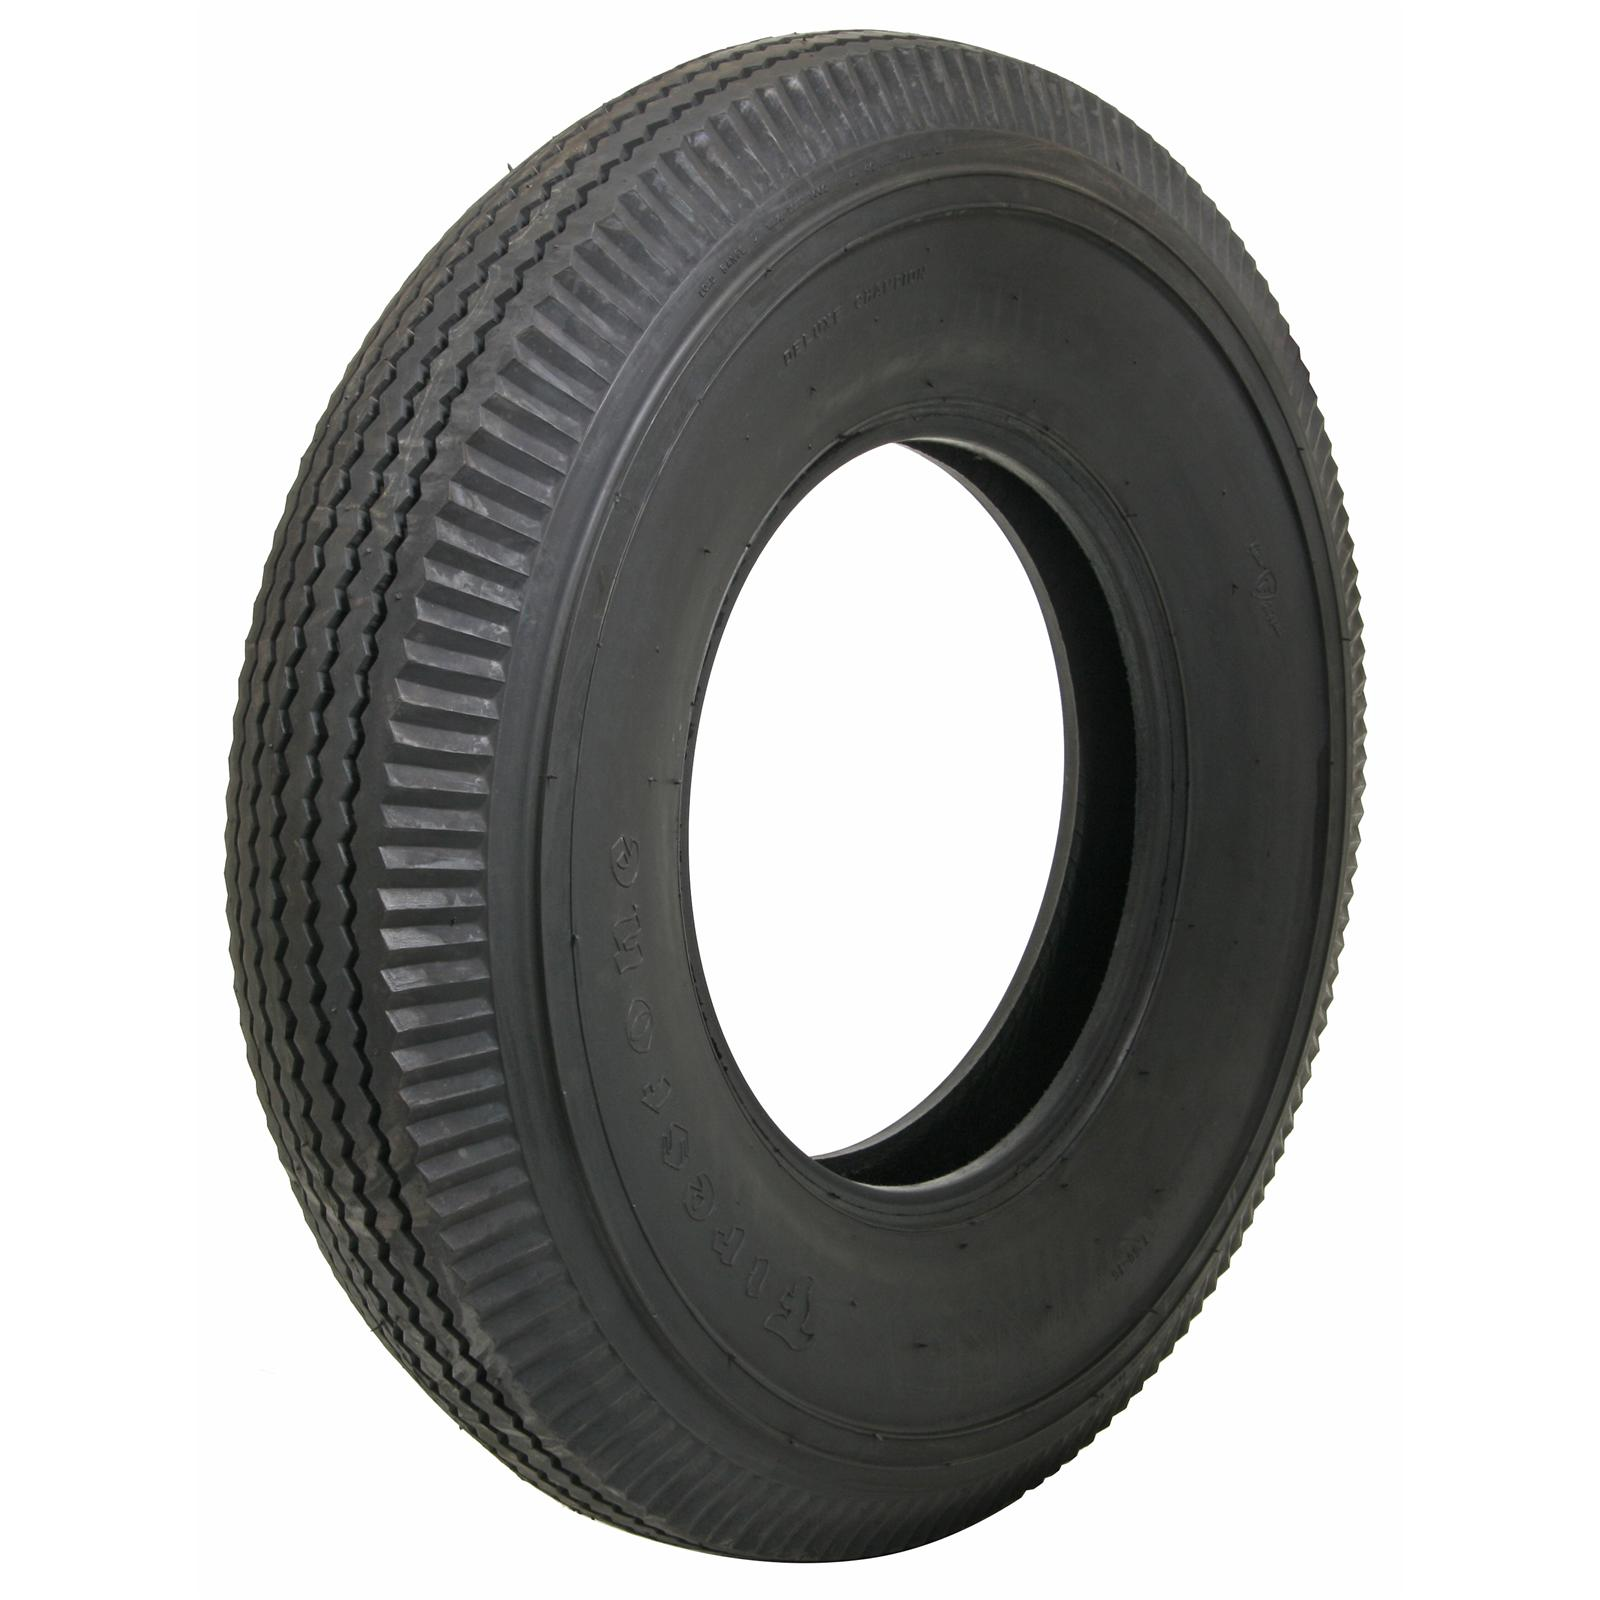 Bias Ply Tires >> Coker Firestone Vintage Bias Ply Tires 682300